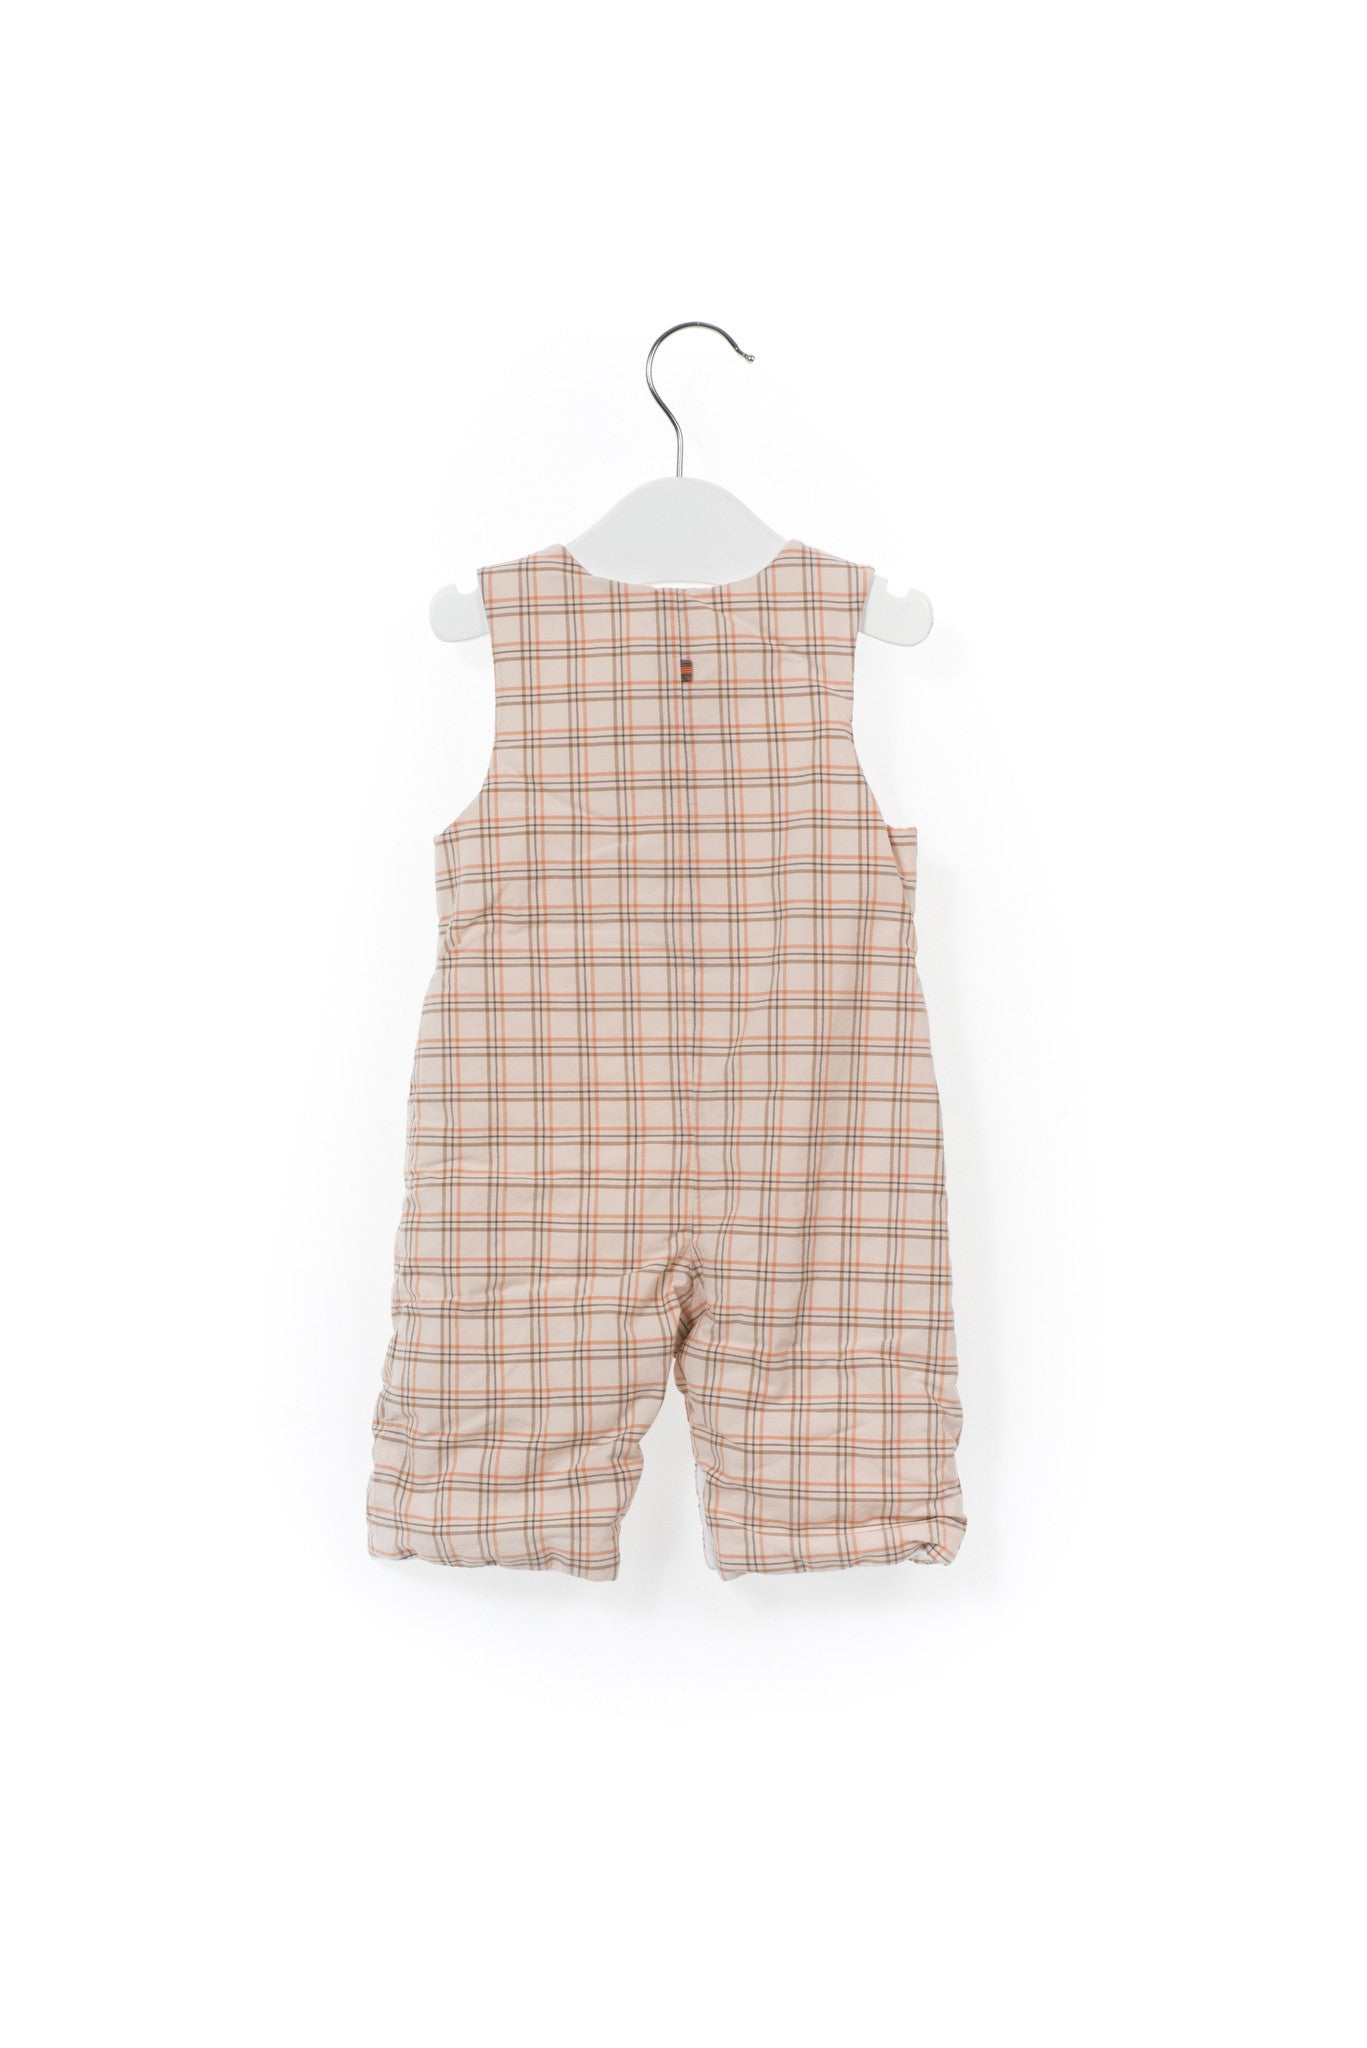 10001177 Jacadi Baby~Overall 3-6M at Retykle